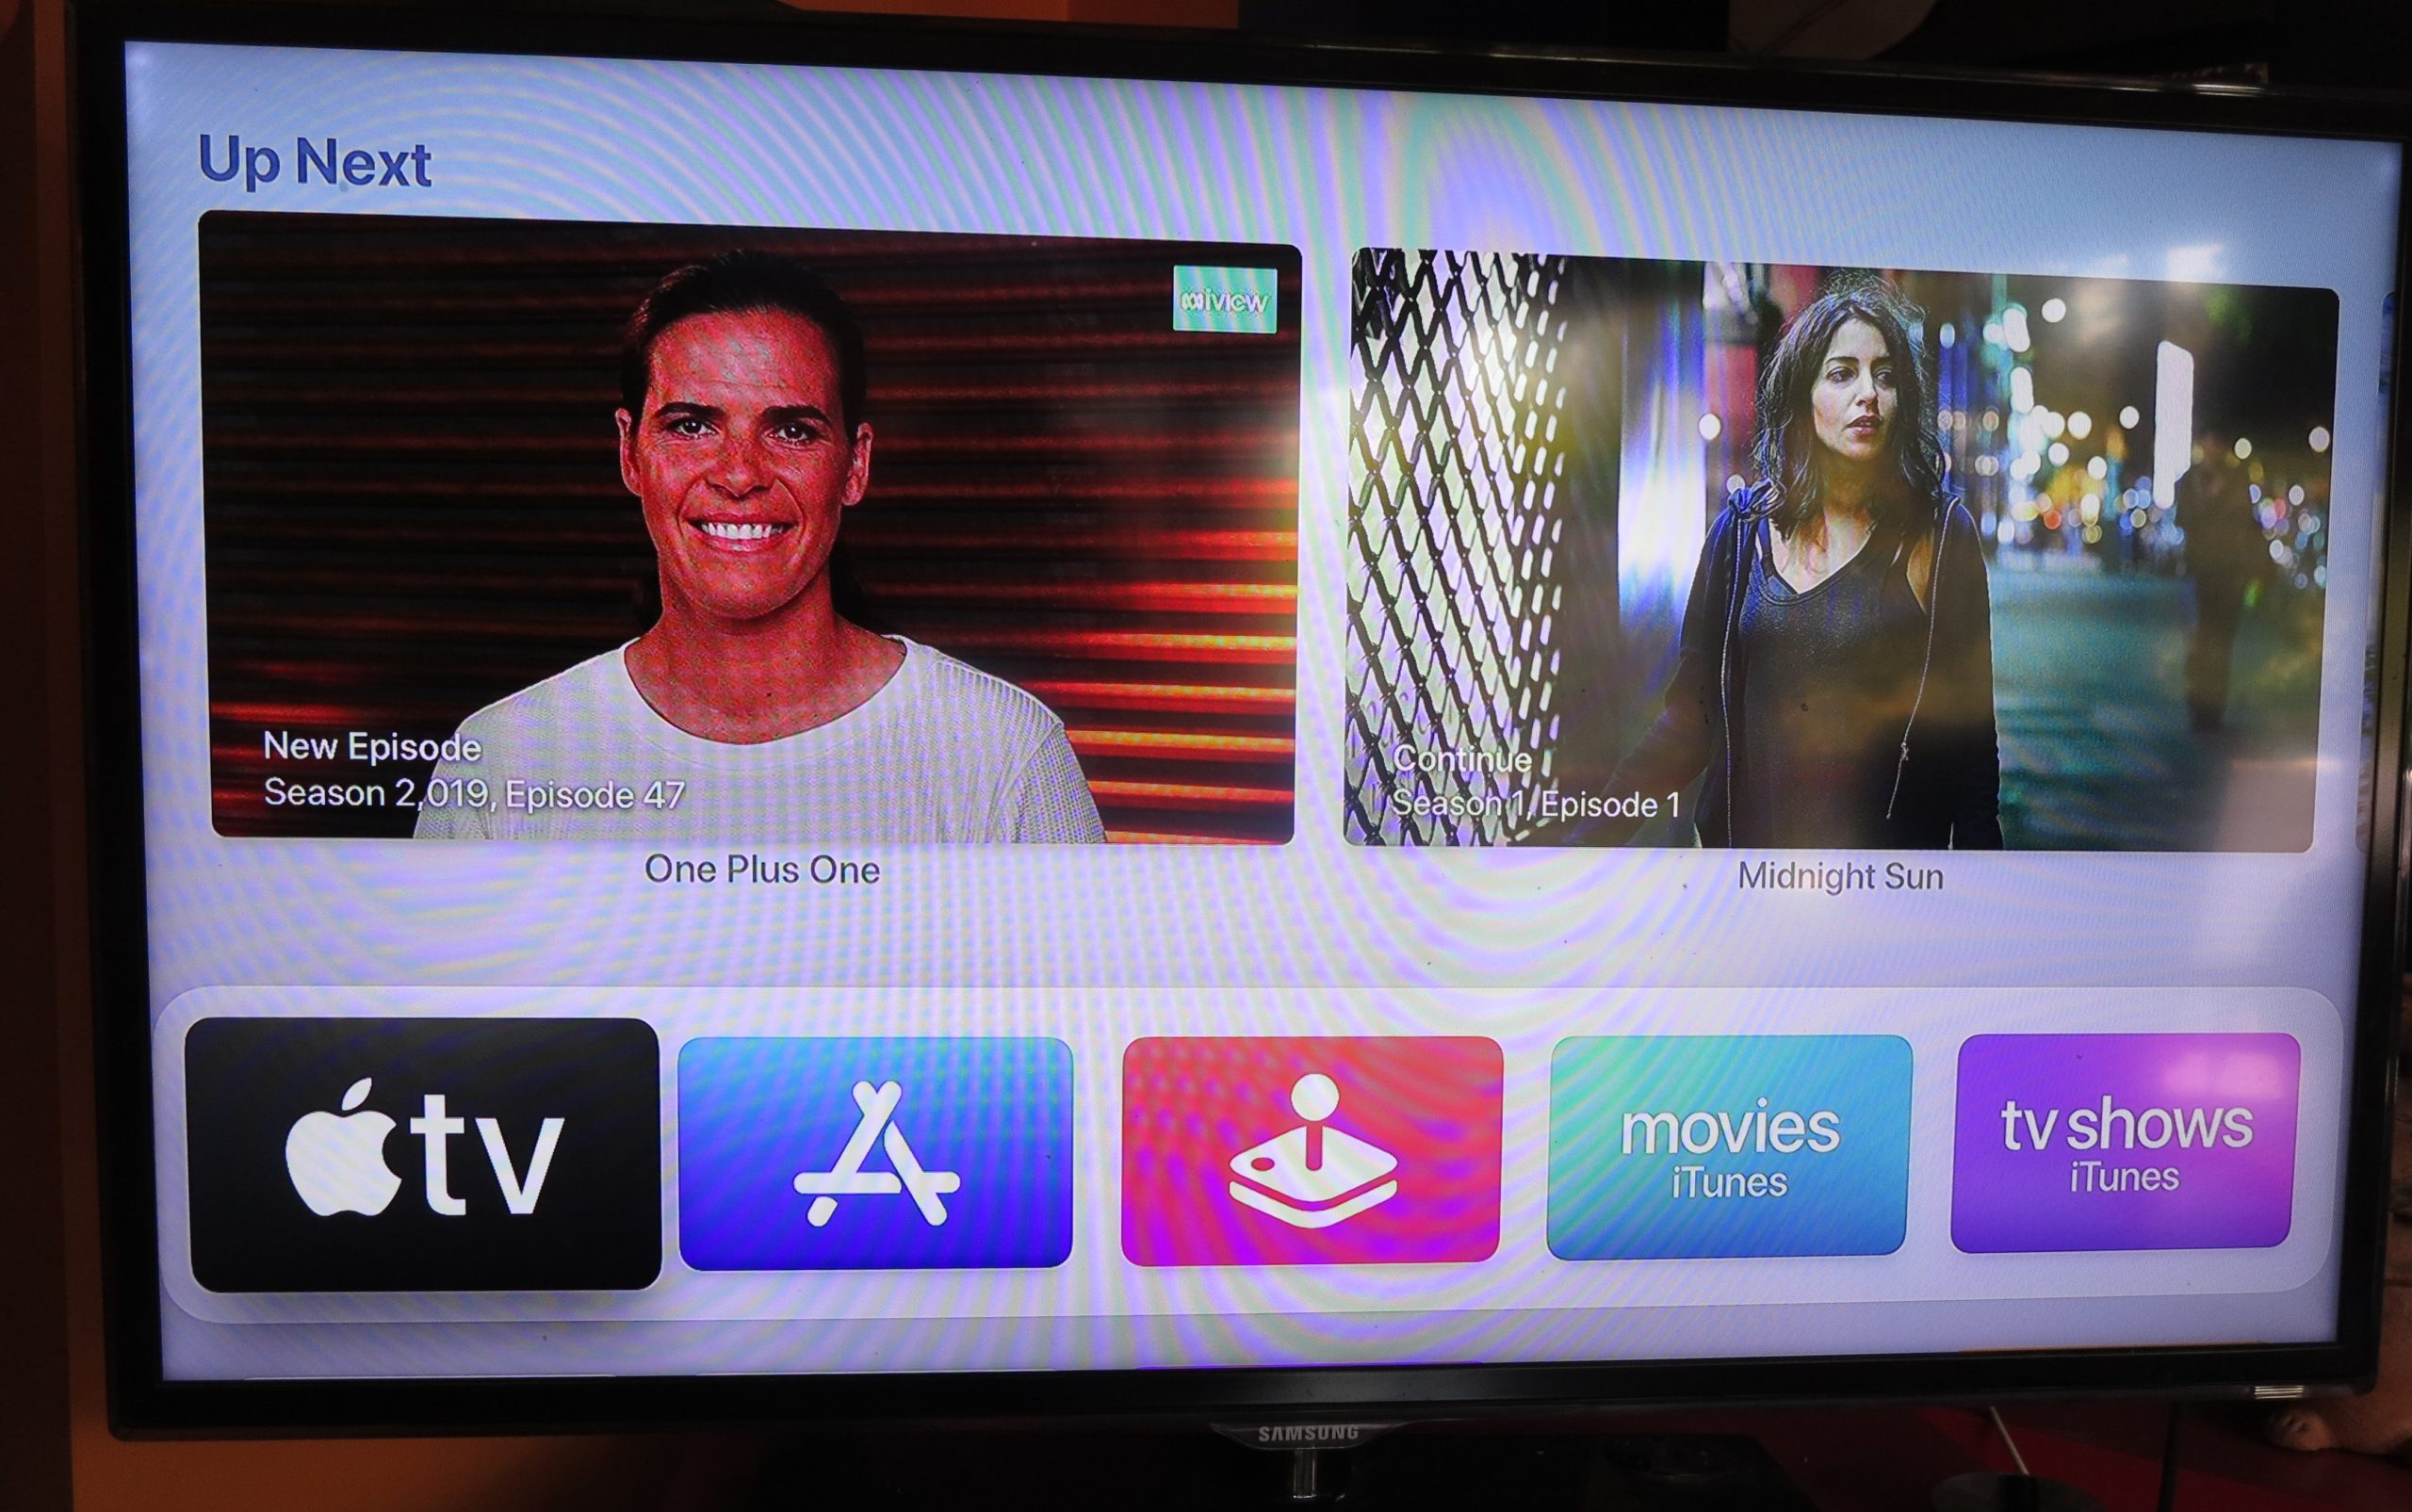 tvOS Apple TV with Up Next list